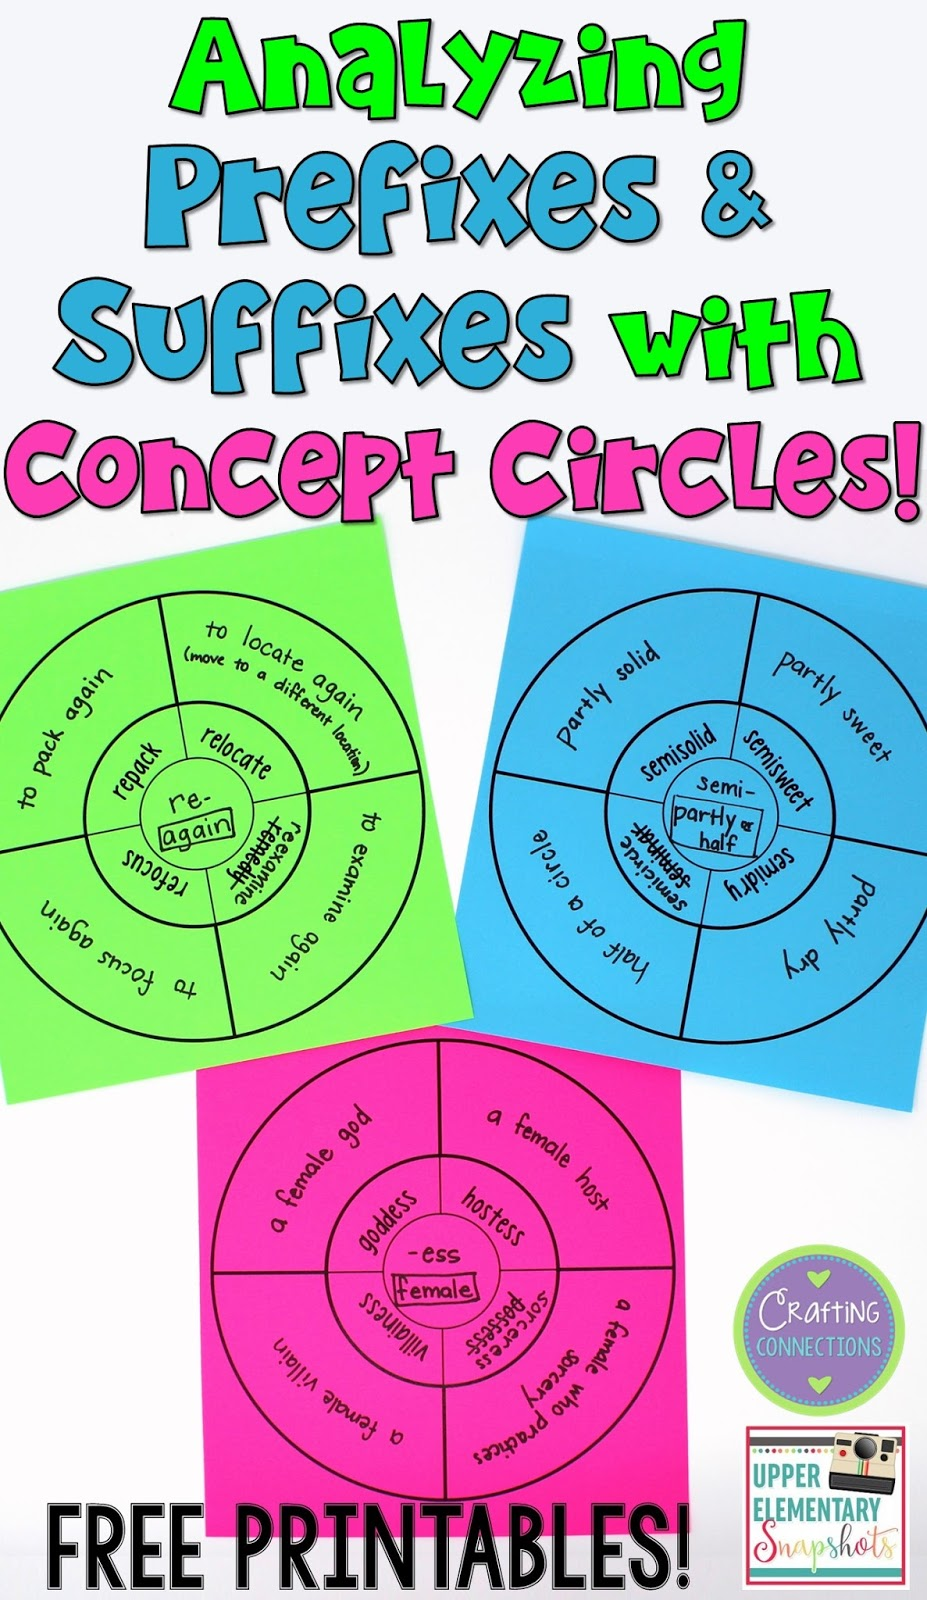 medium resolution of Using Concept Circles to Analyze Prefixes and Suffixes   Upper Elementary  Snapshots